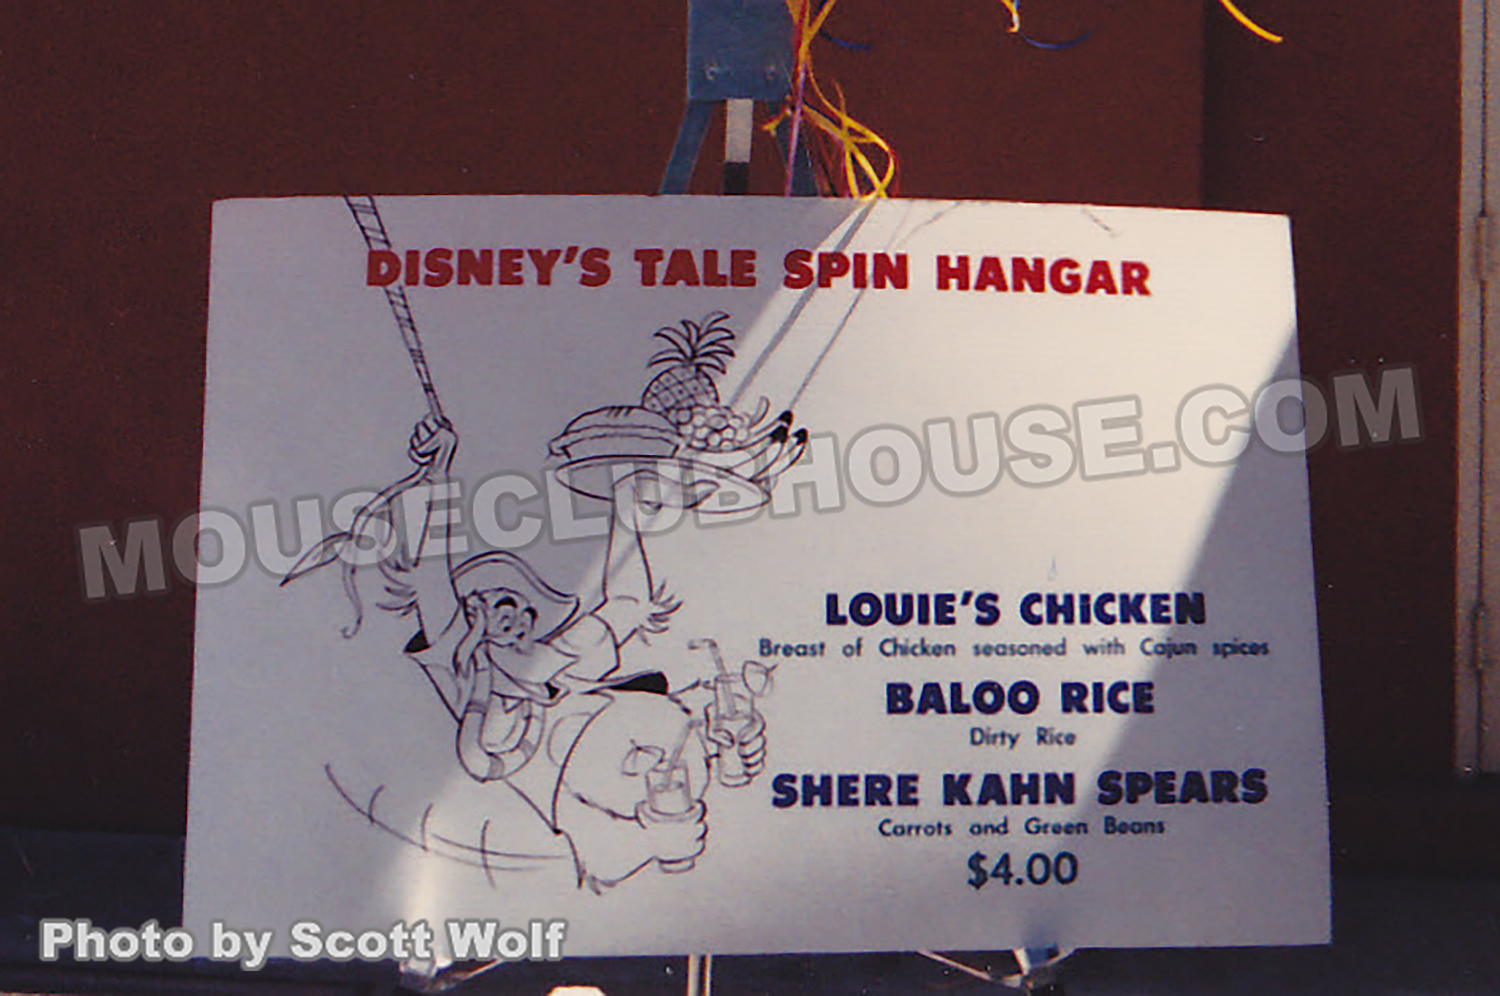 Special Disney Afternoon meals were sold that day